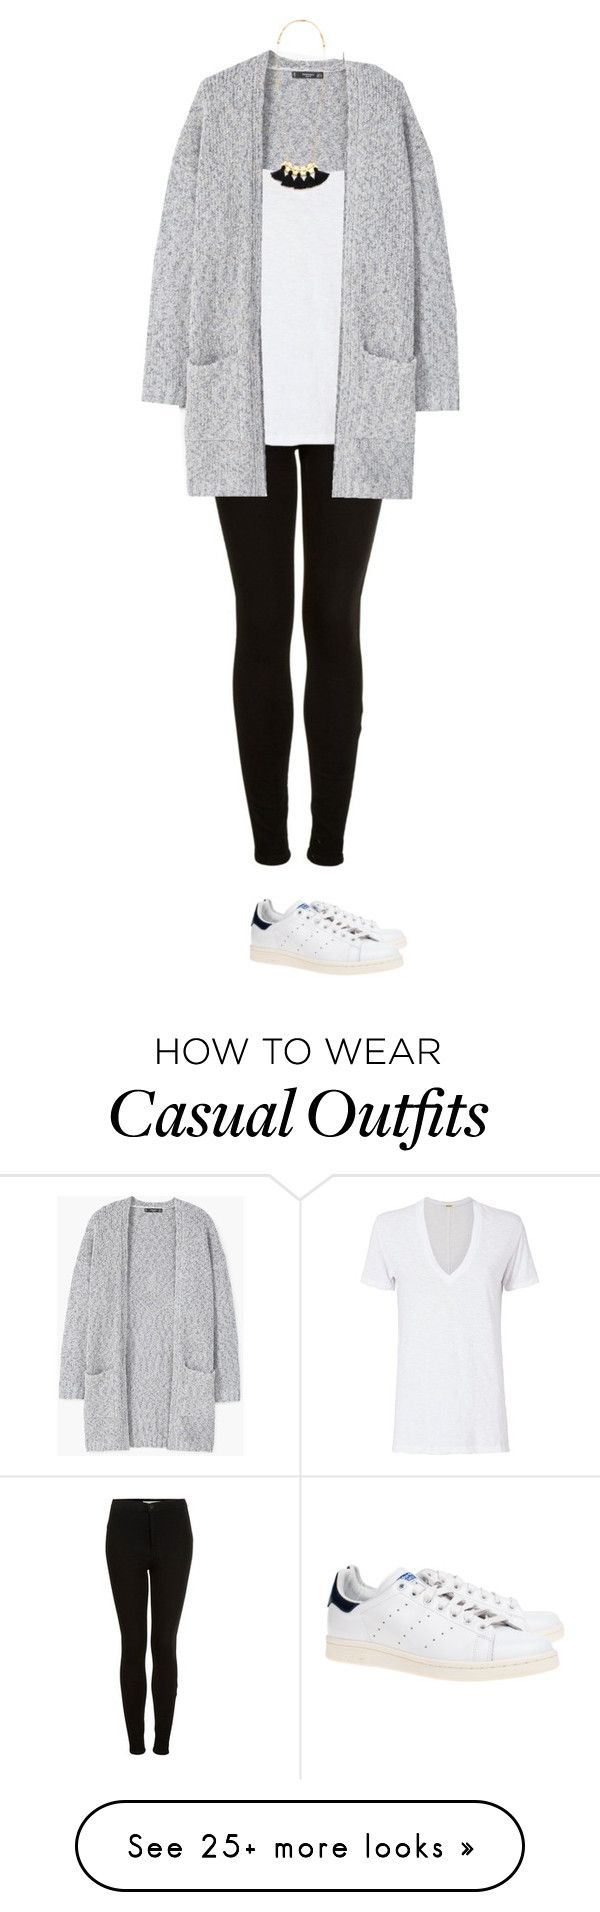 """""""Weekend Casual basics - long cardigan, drapey white vneck tshirt, black Moto skinnies, and Stan Smith Adidas"""" by wrymommy on Polyvore featuring Topshop, Monrow, MANGO, Madewell and adidas Originals"""